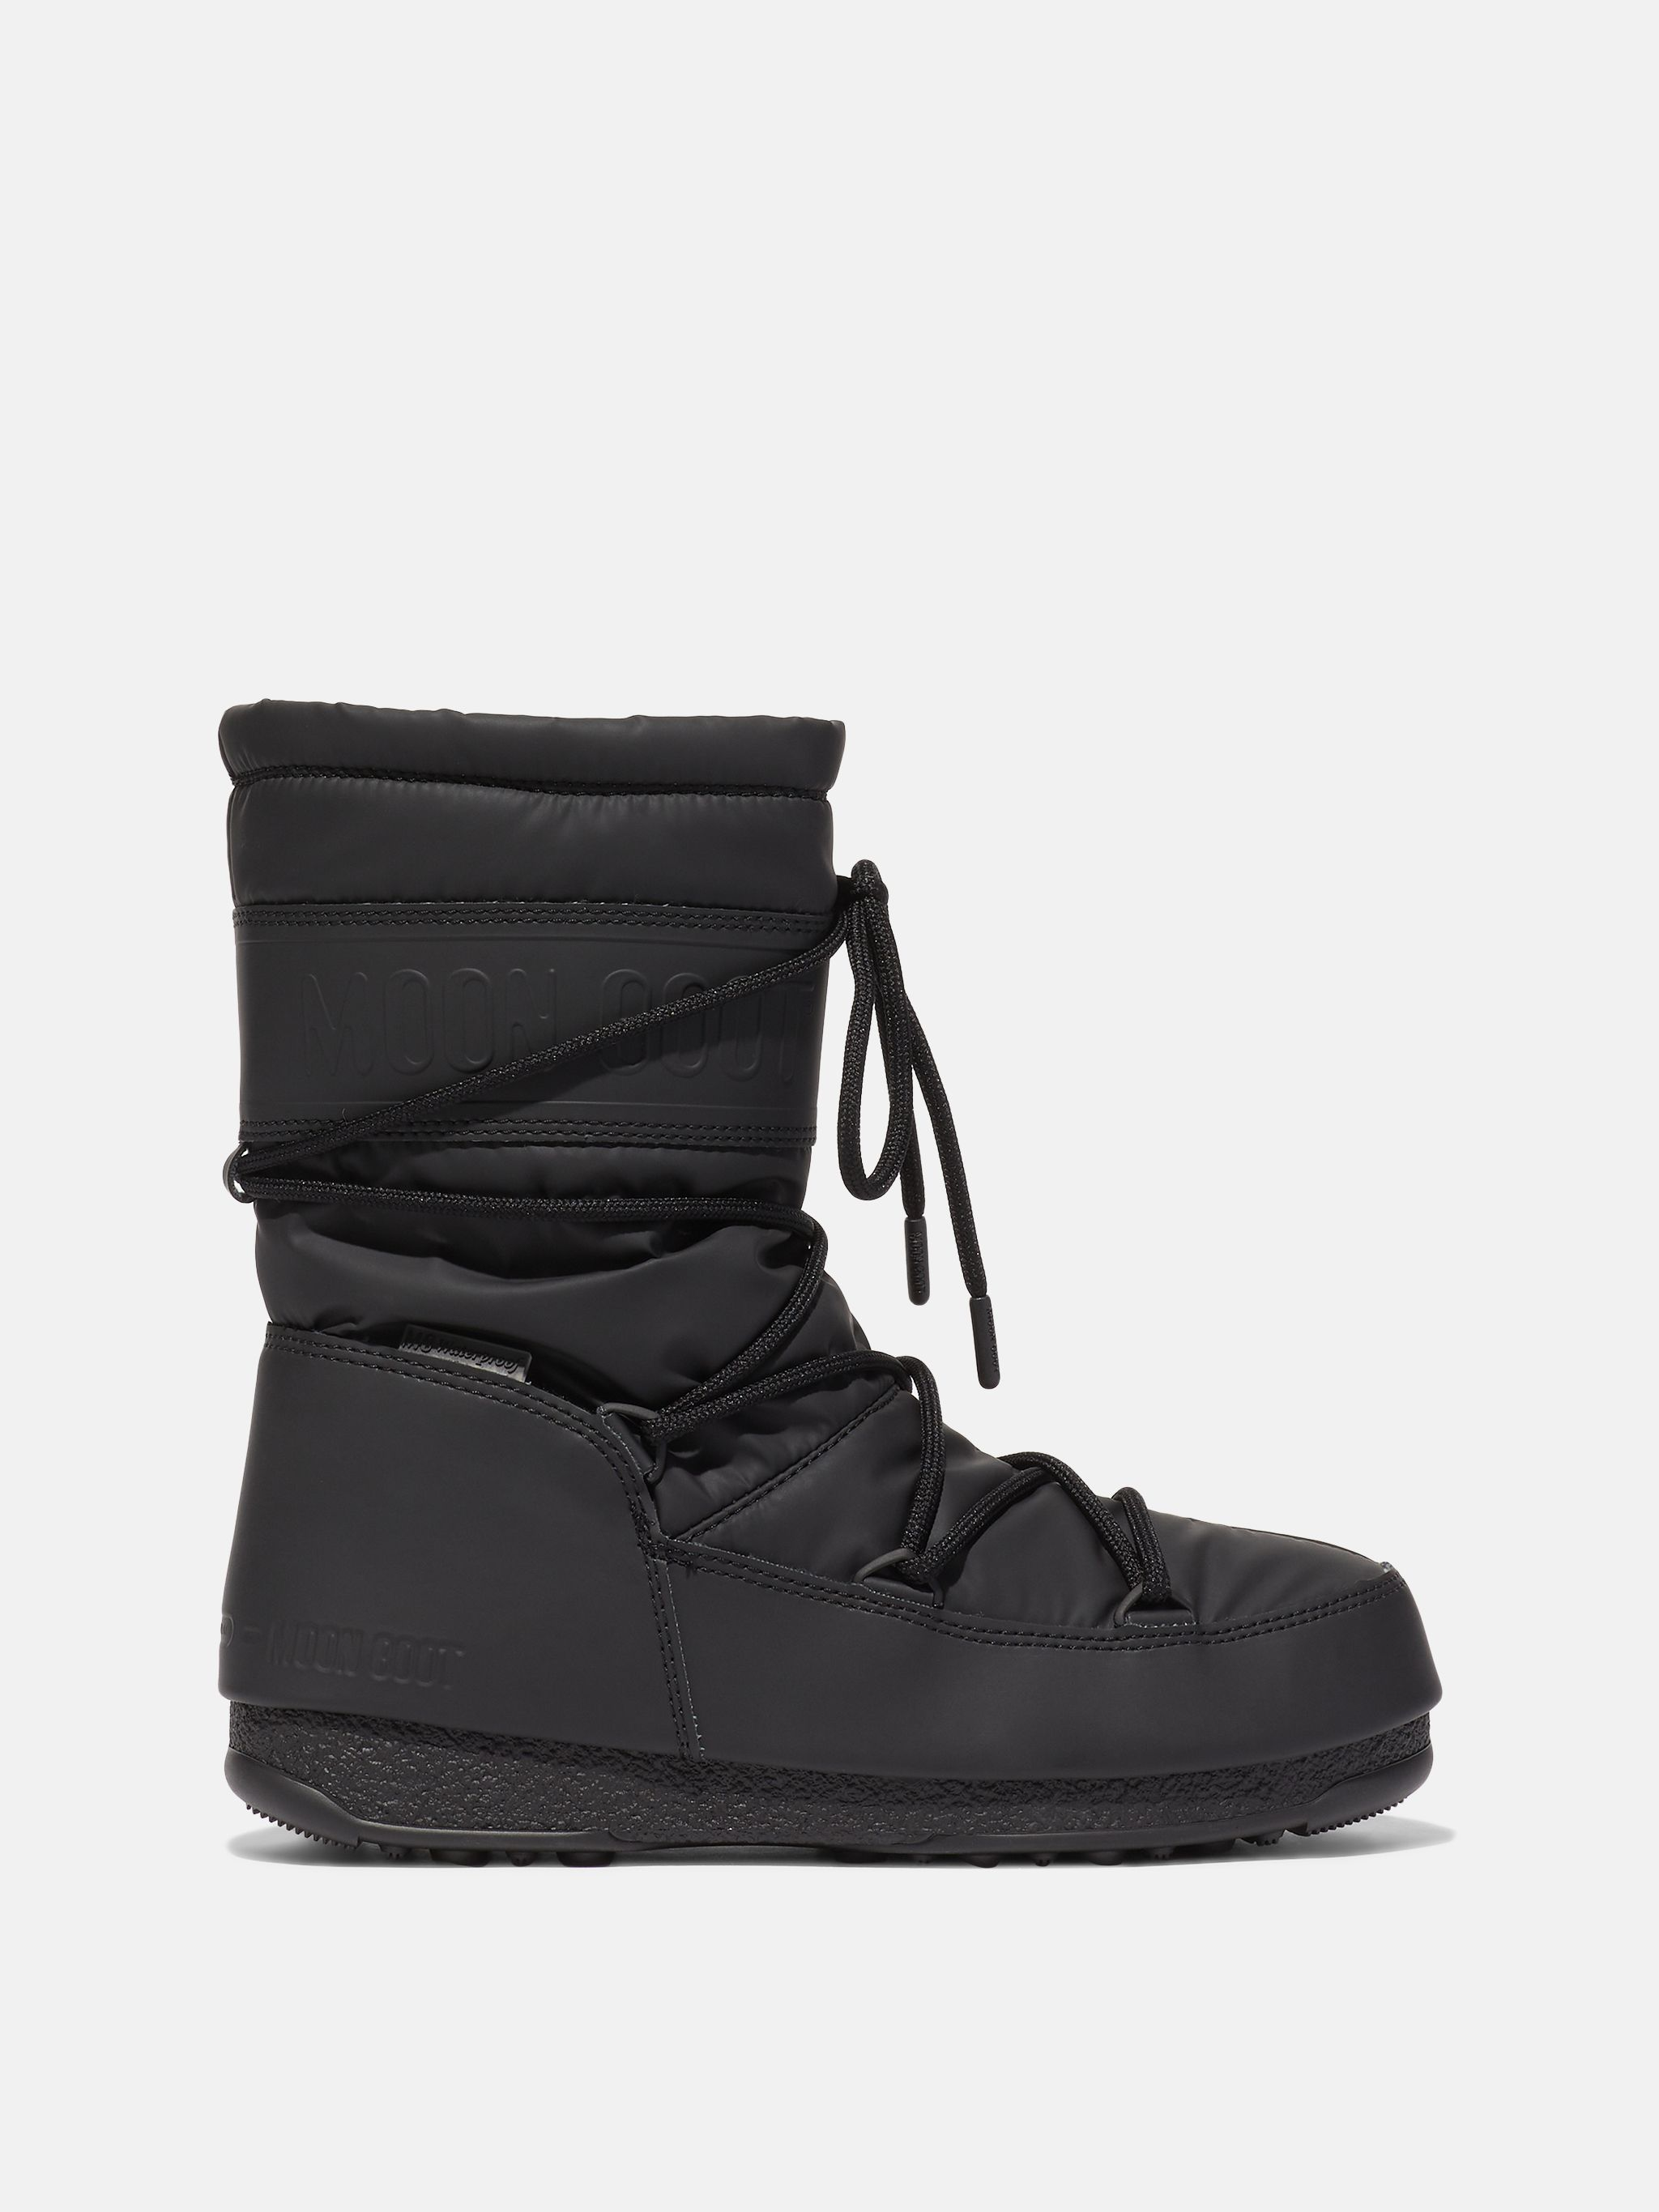 САПОГИ PROTECHT MID BLACK RUBBER